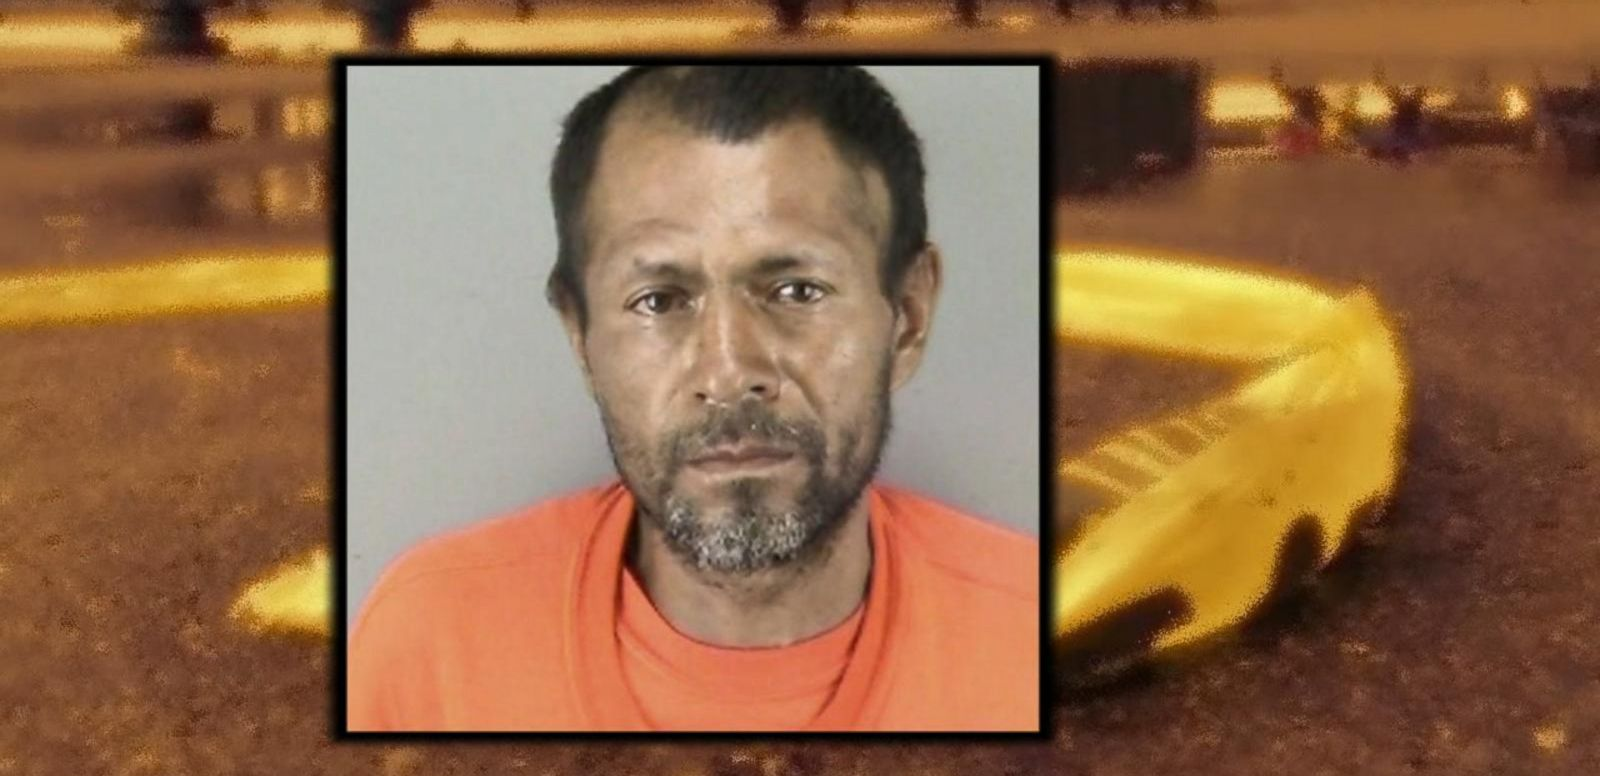 VIDEO: San Francisco Pier Shooting Suspect Allegedly Deported 5 Times